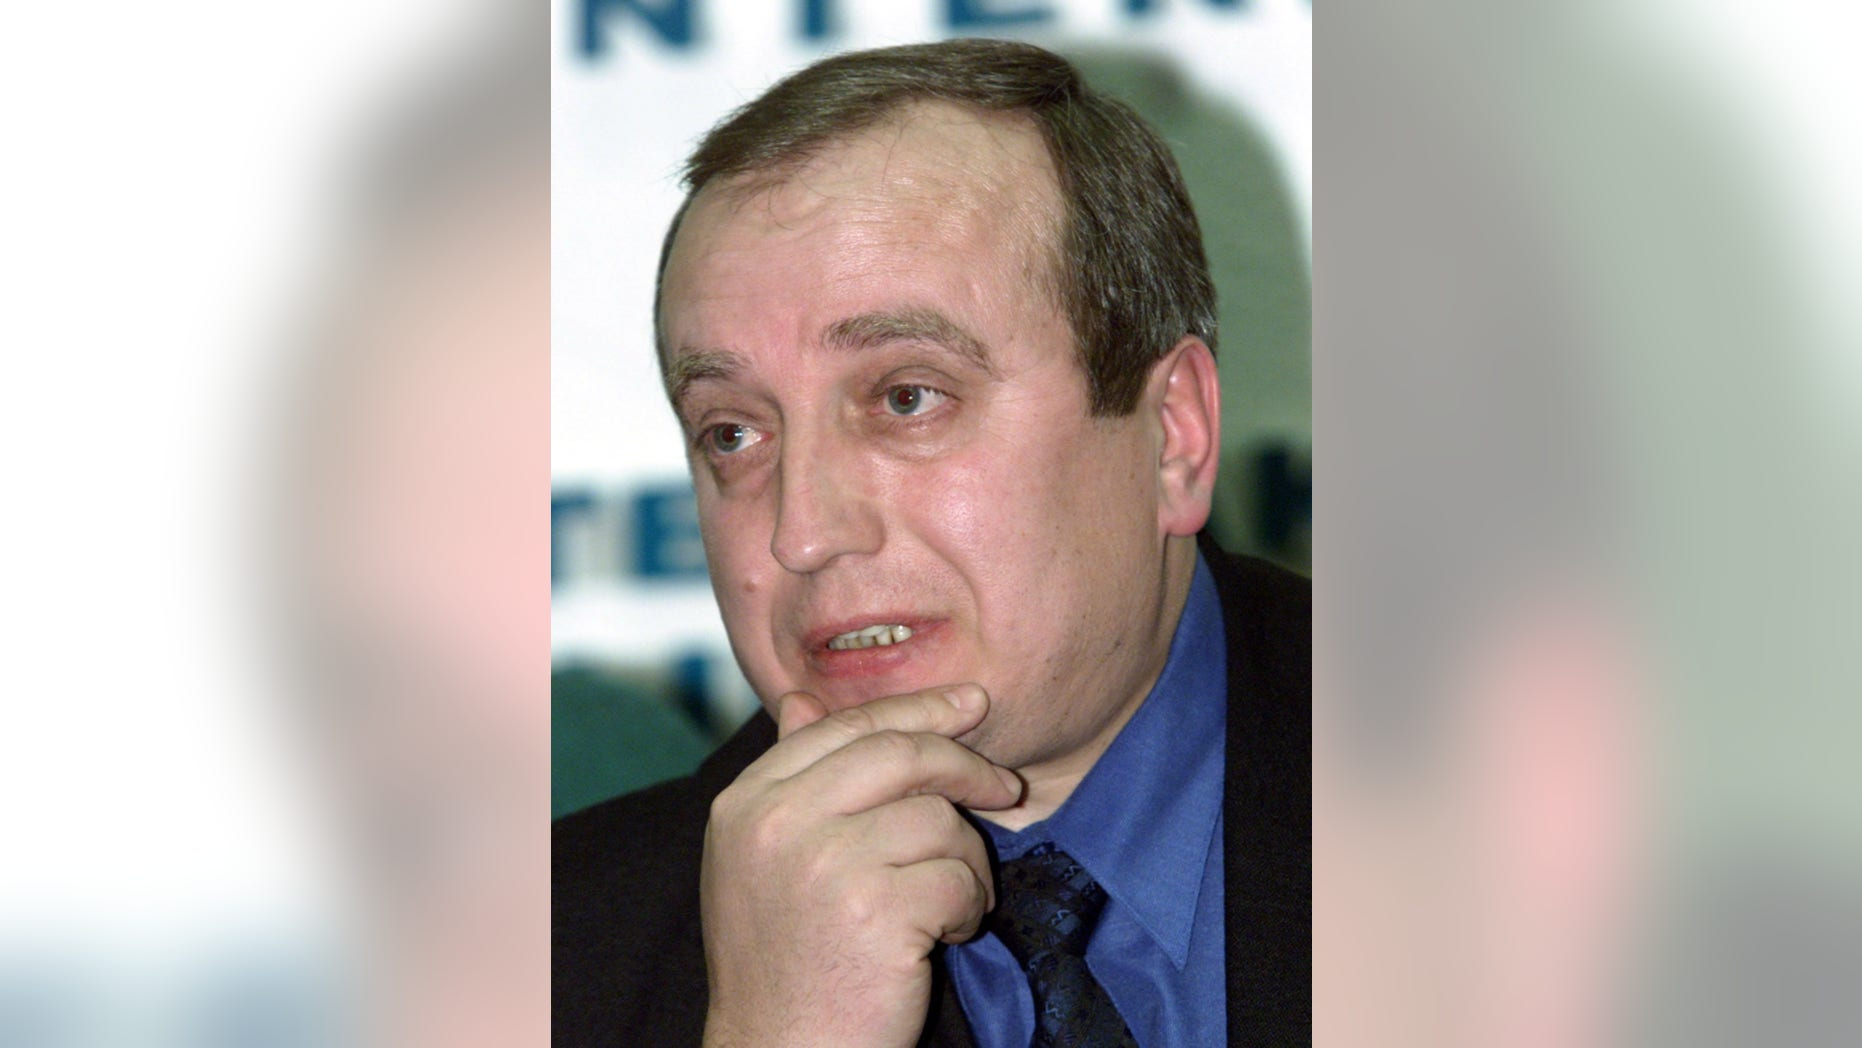 Russia's Frants Klintsevich responded to suggestions that the UK could preemptively strike Russia.